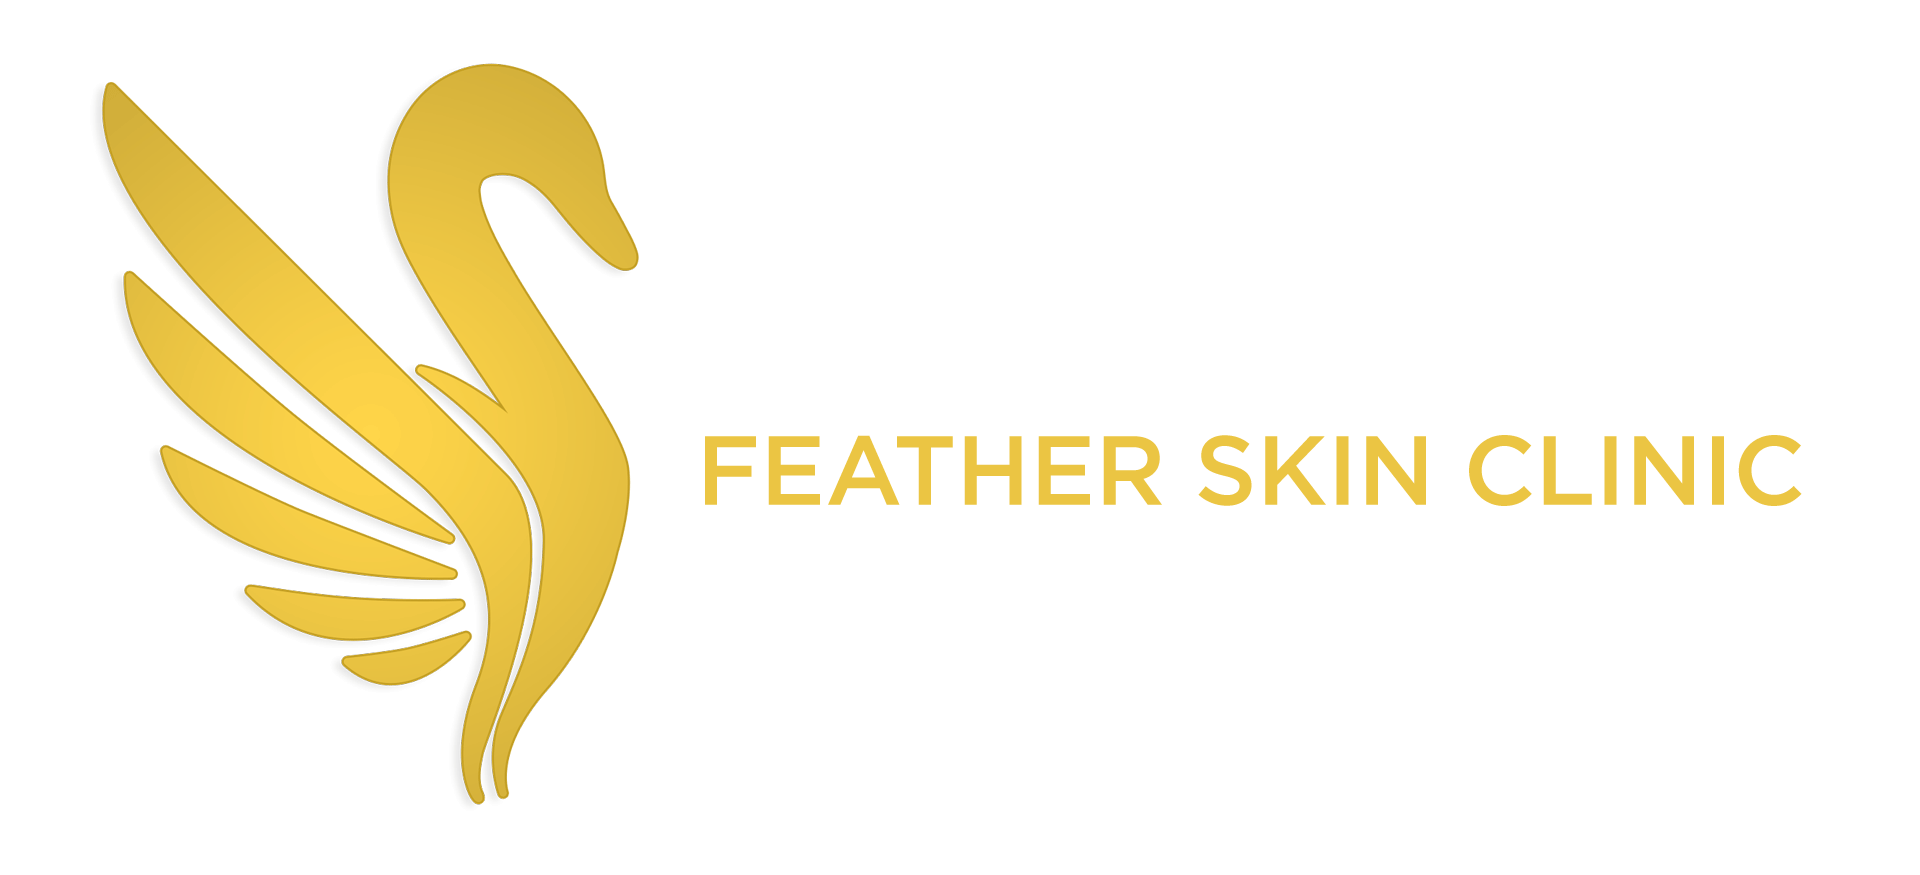 Feather Skin Clinic Retina Logo